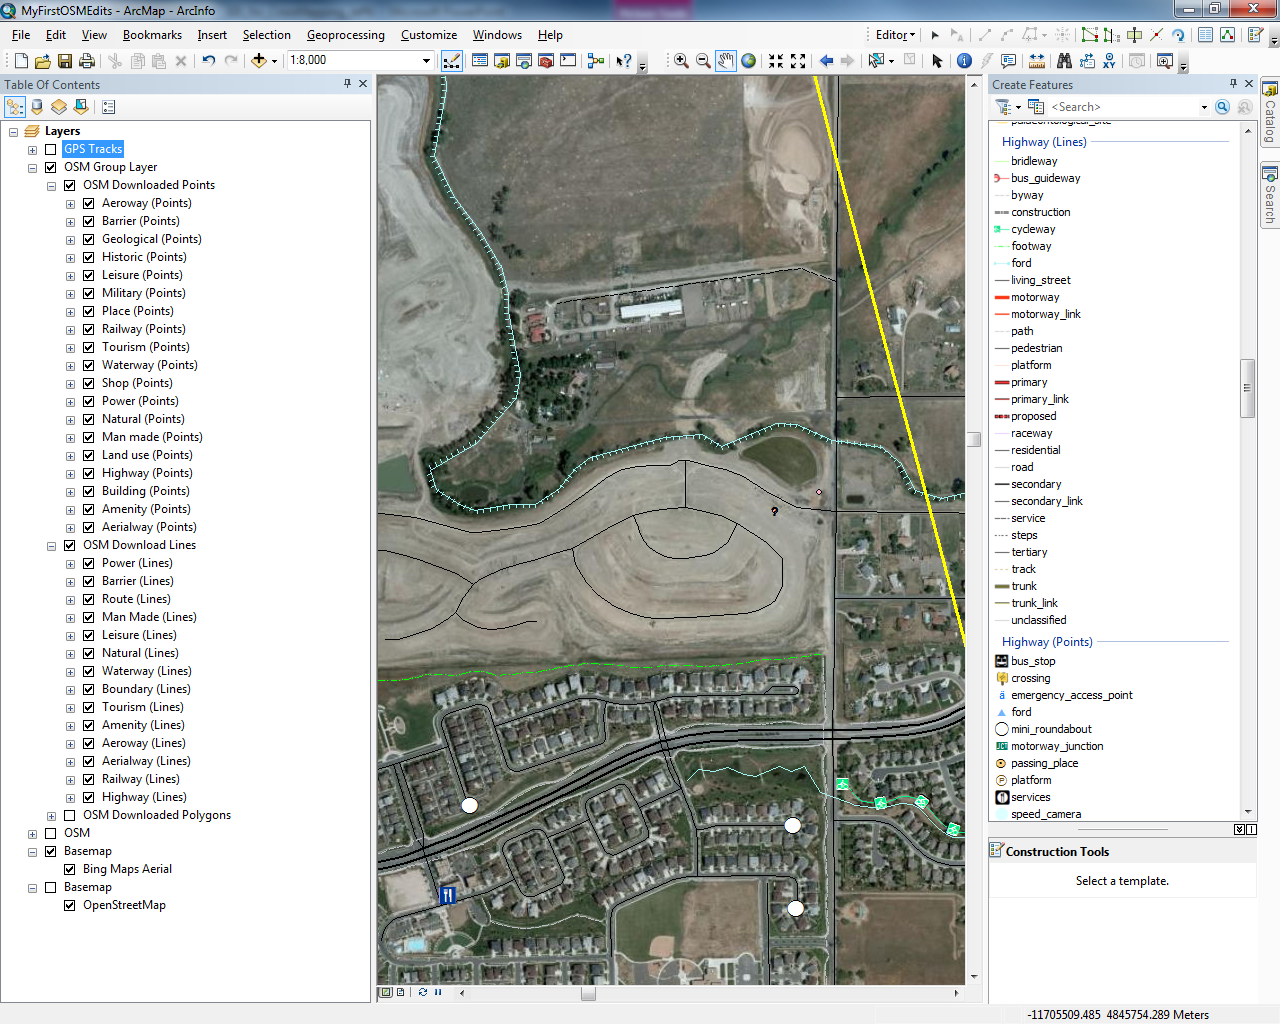 Hello Map! – Getting started with the ArcGIS Editor for